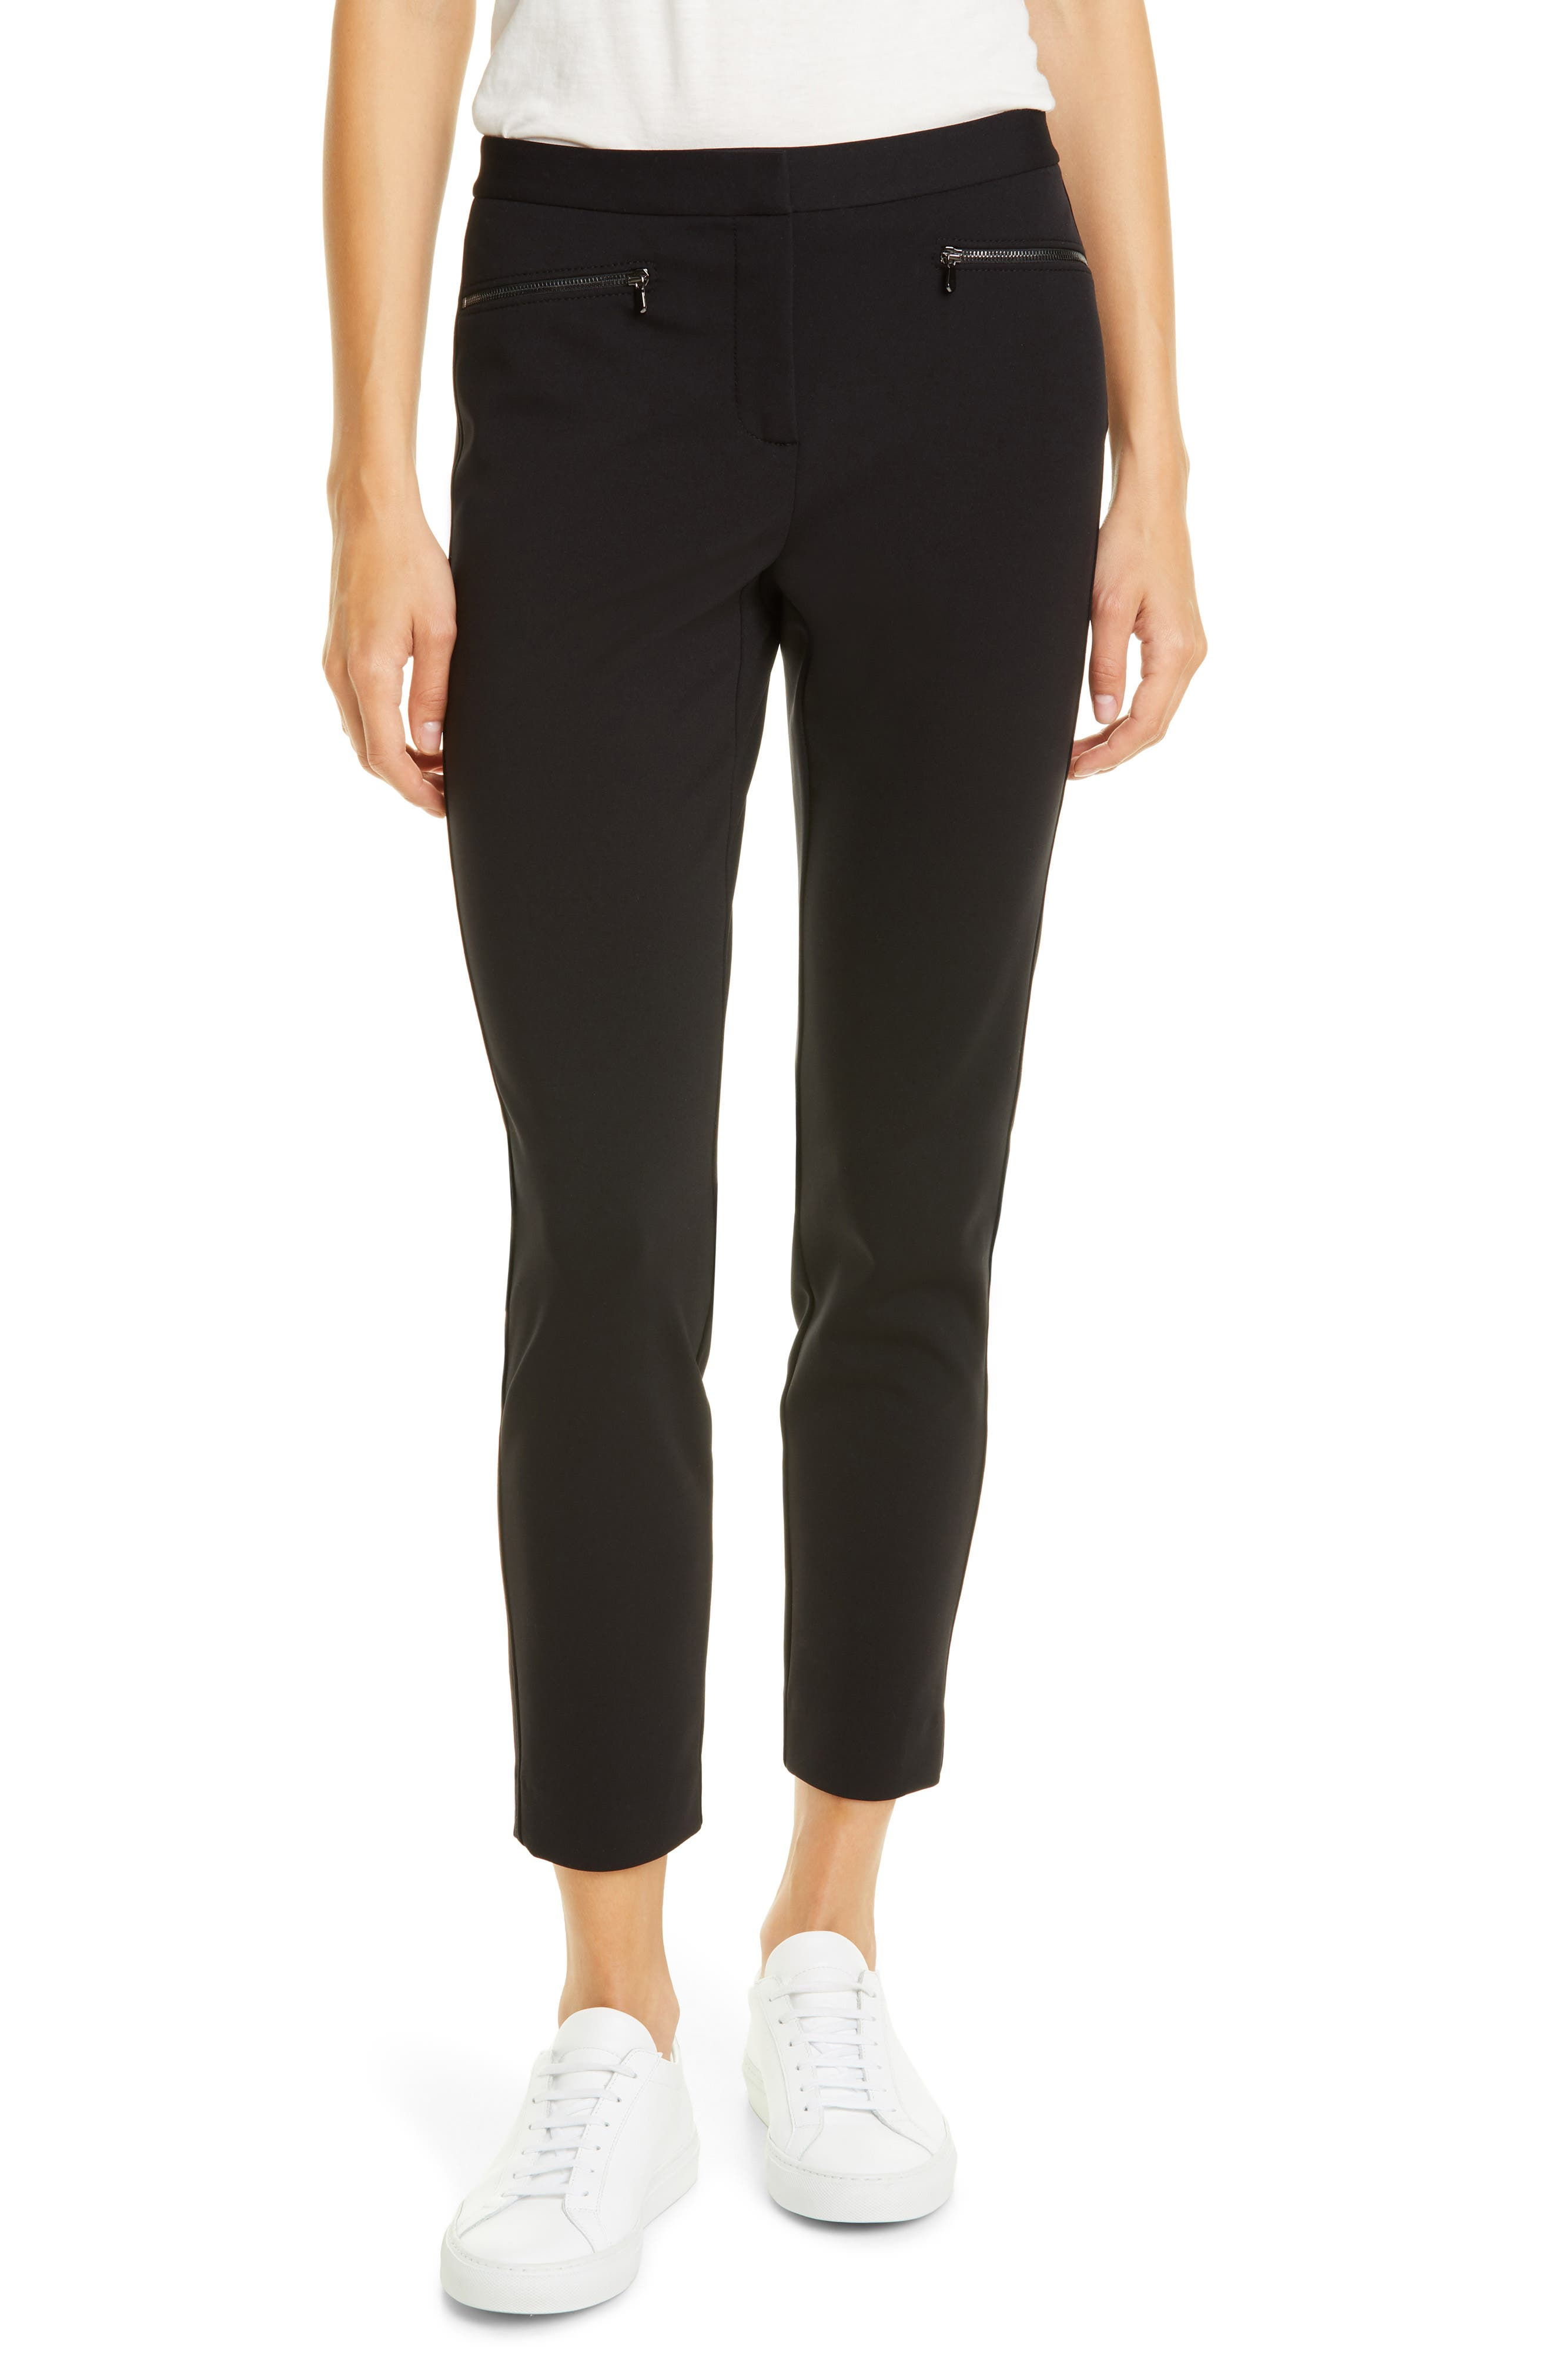 Nordstrom Signature Exposed Zip Knit Pants